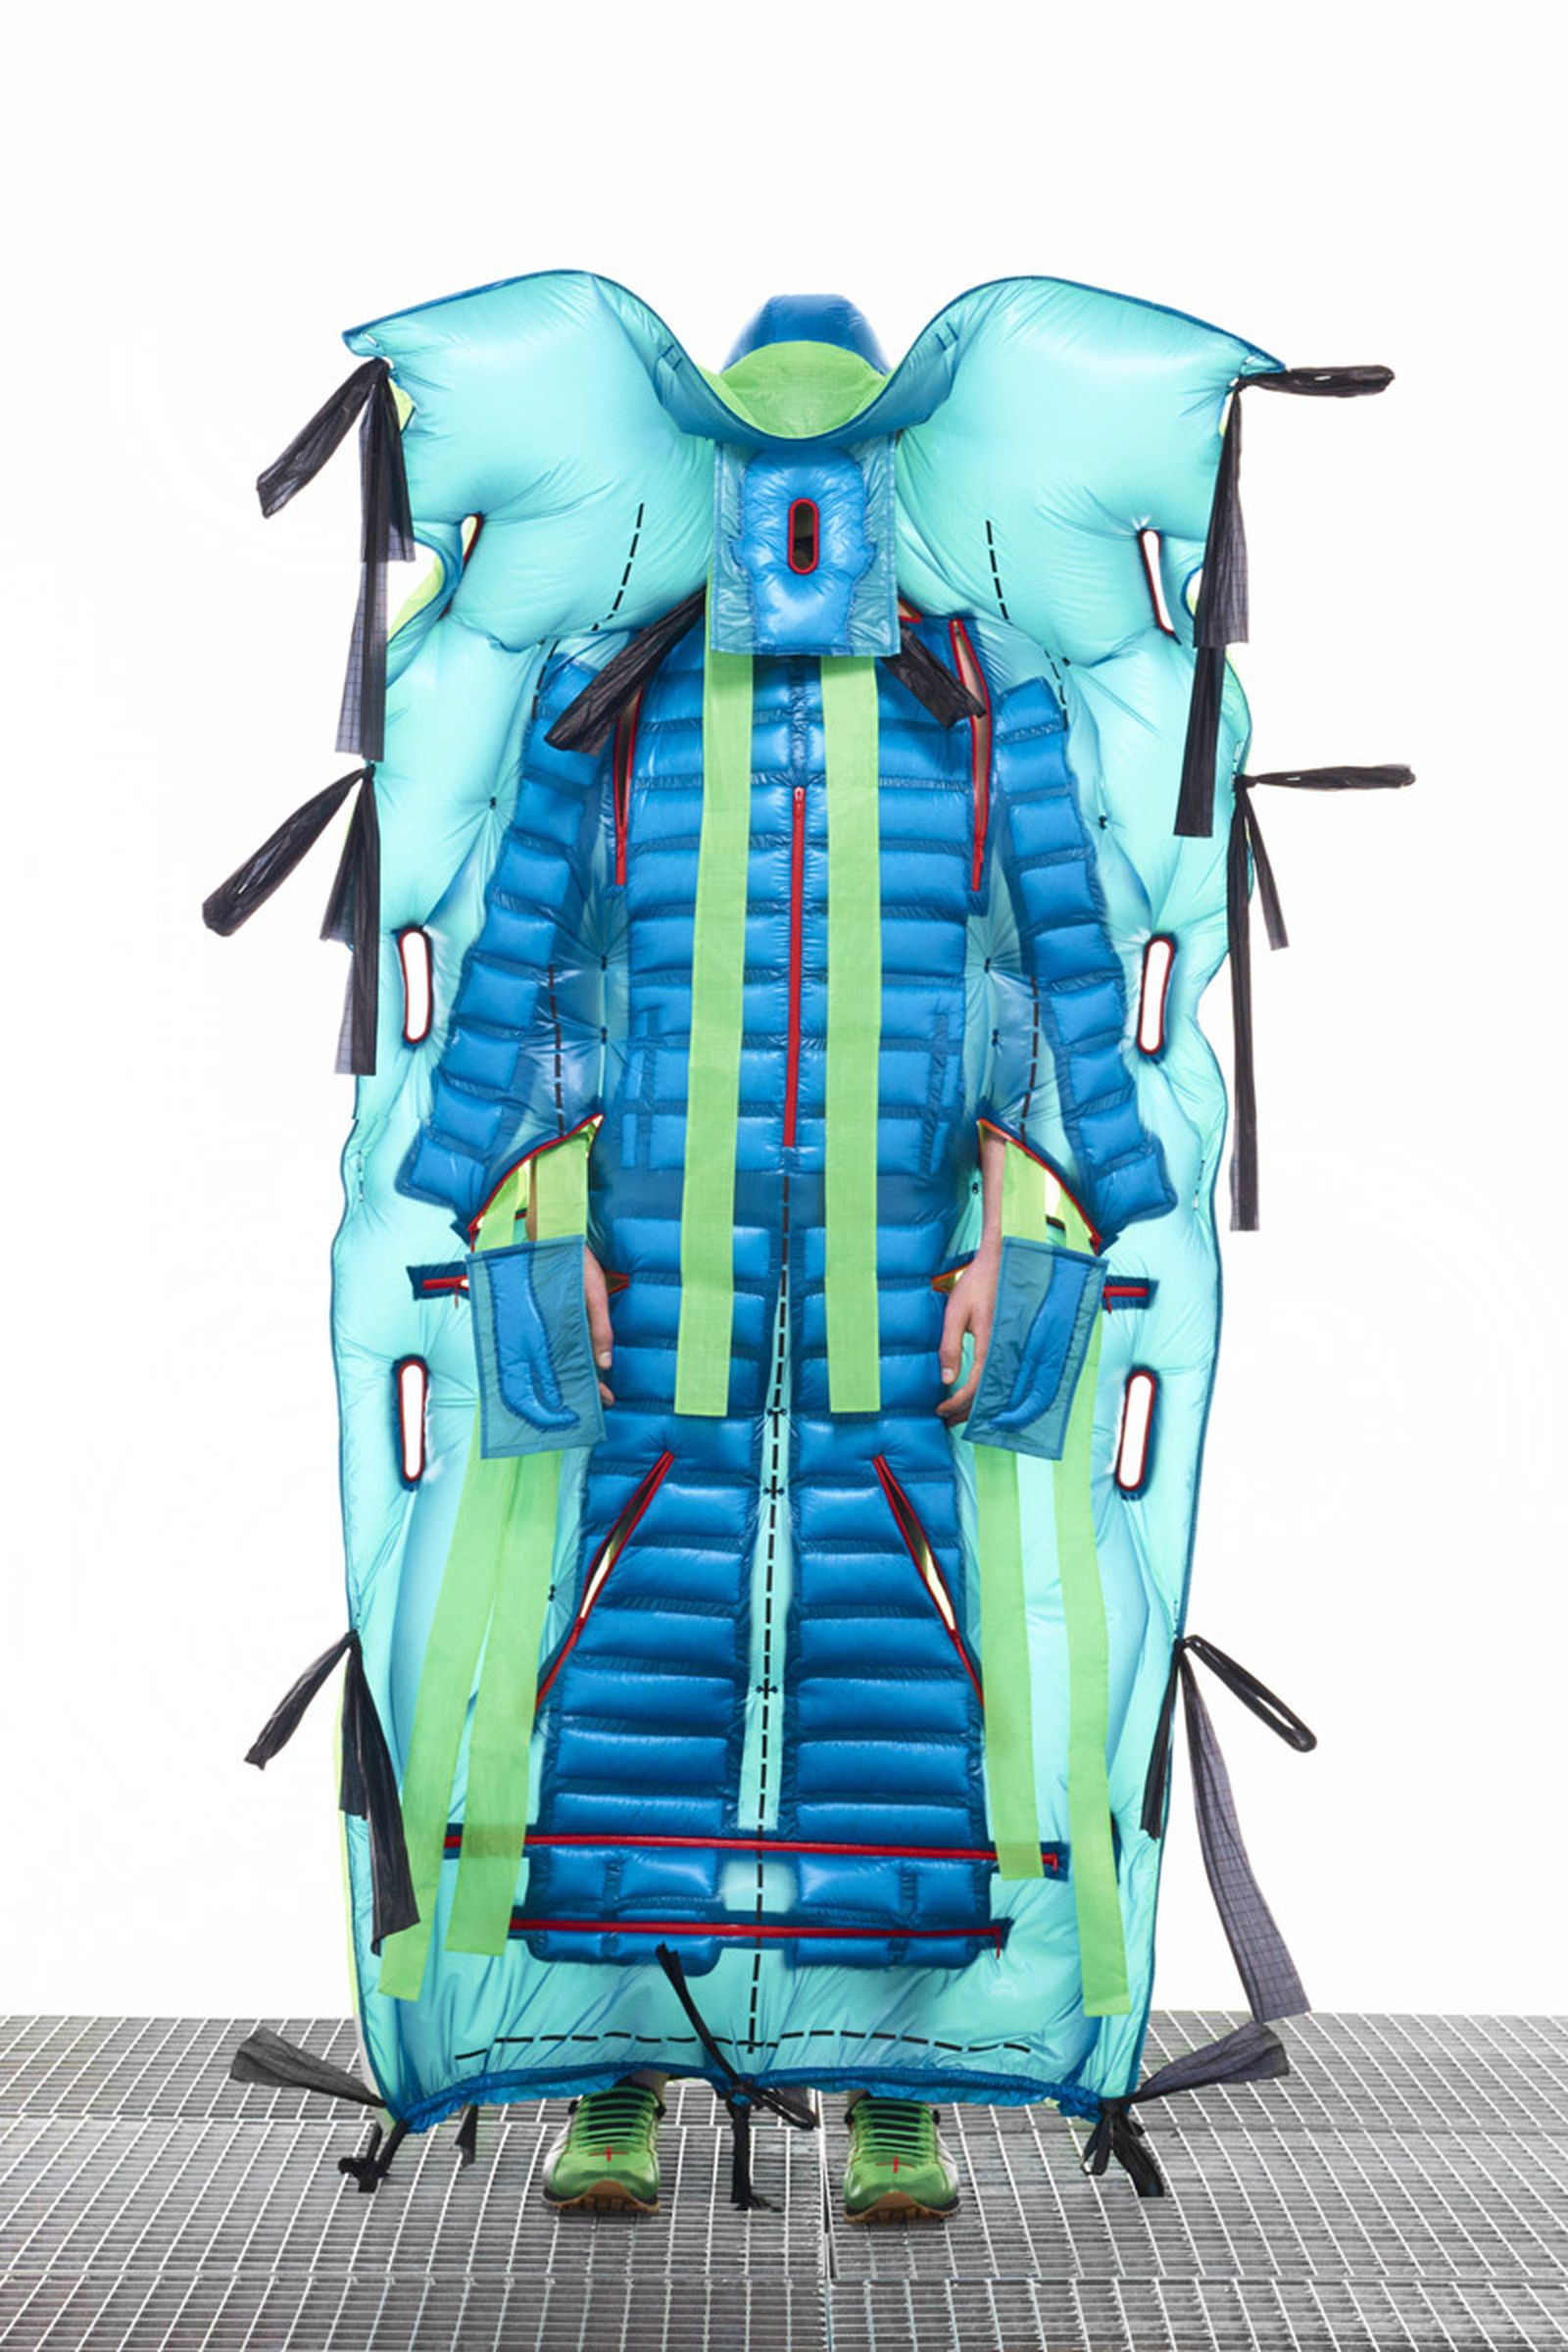 5 MONCLER CRAIG GREEN_COLLECTION IMAGES (7)